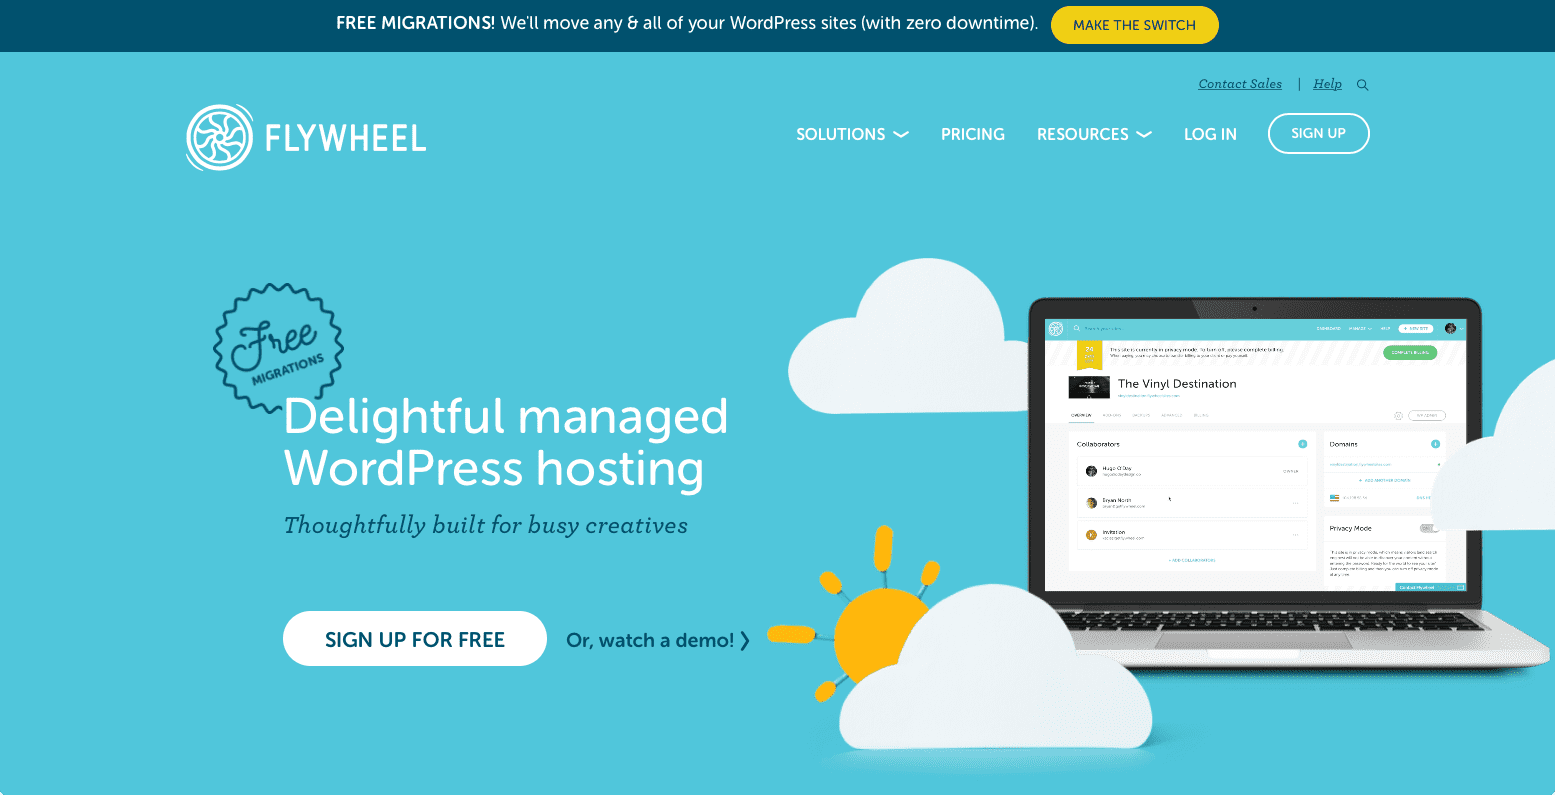 Flywheel Managed WordPress Hosting website screenshot